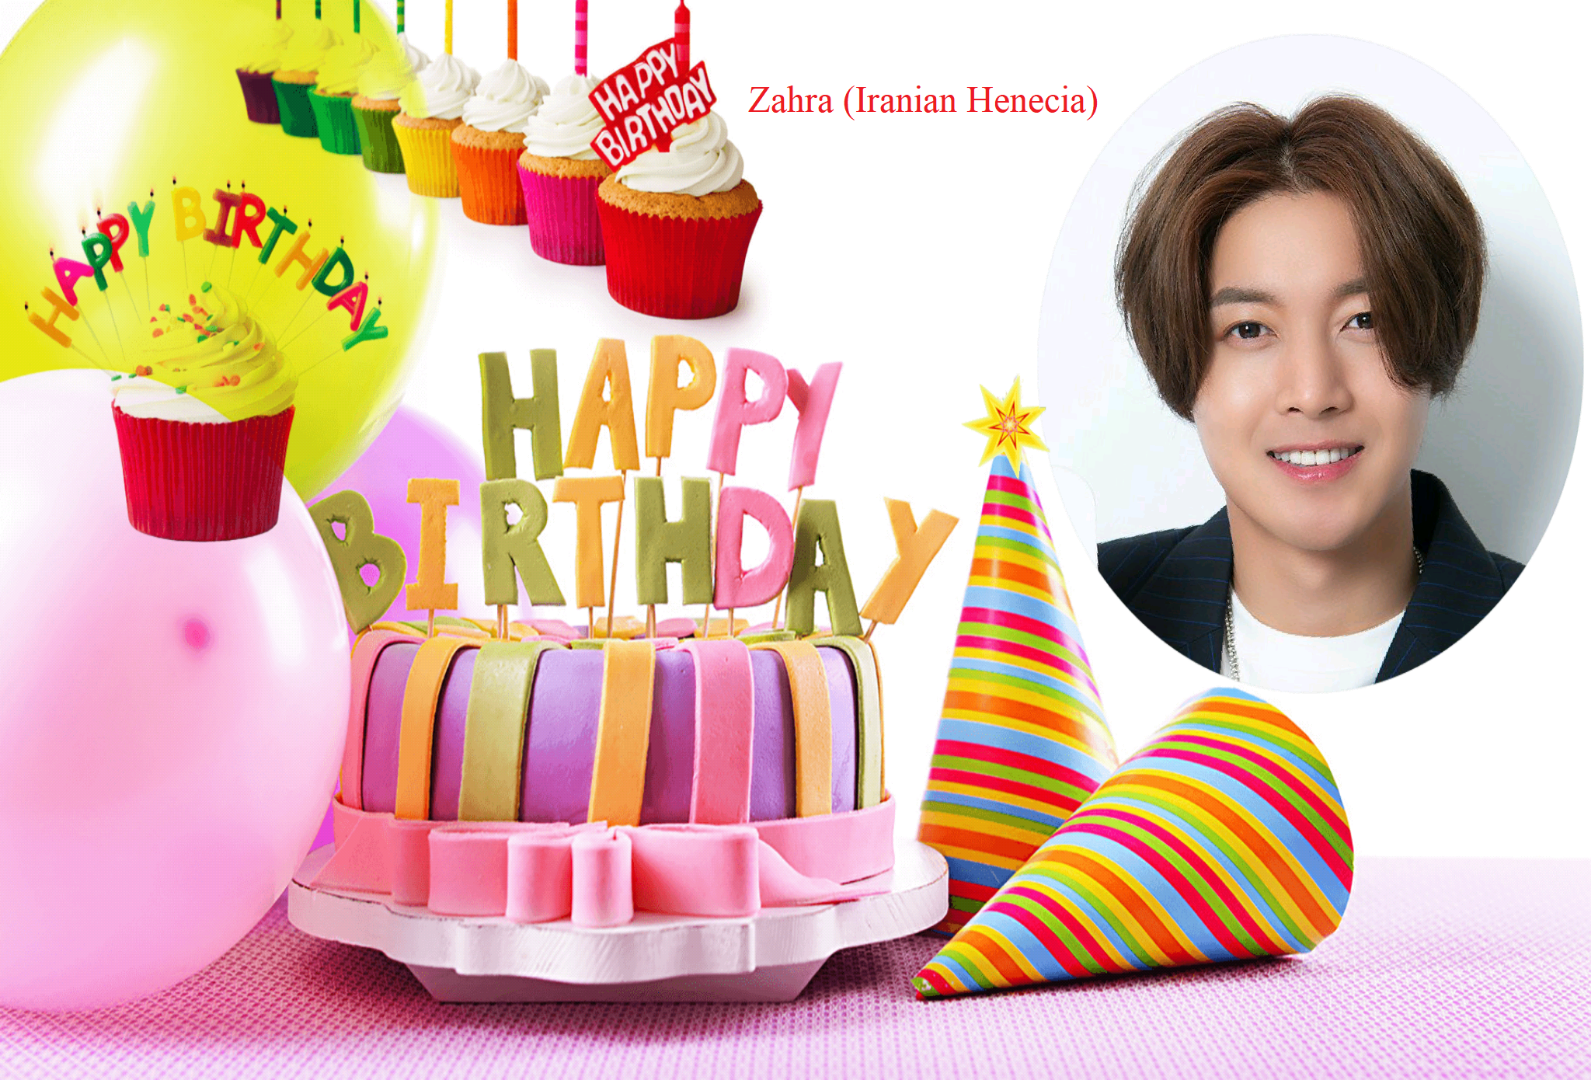 (My Fanart from Happy 32th Birtday of KHJ (5